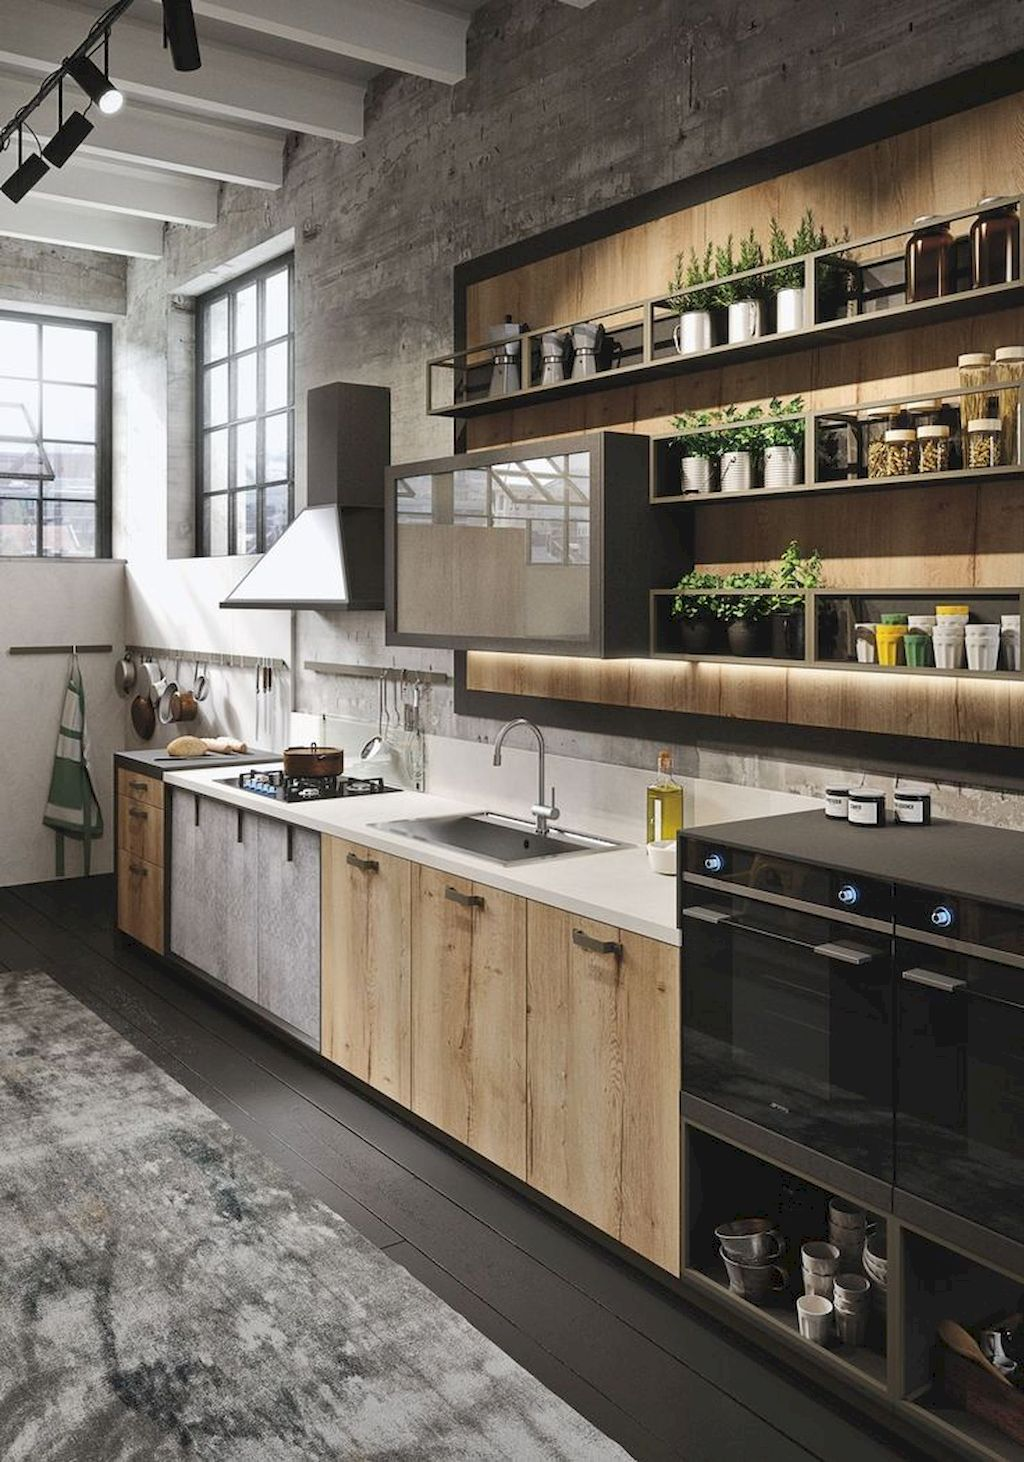 50 Trending Kitchen Ideas You Will Really Want It Now Elonahome Com